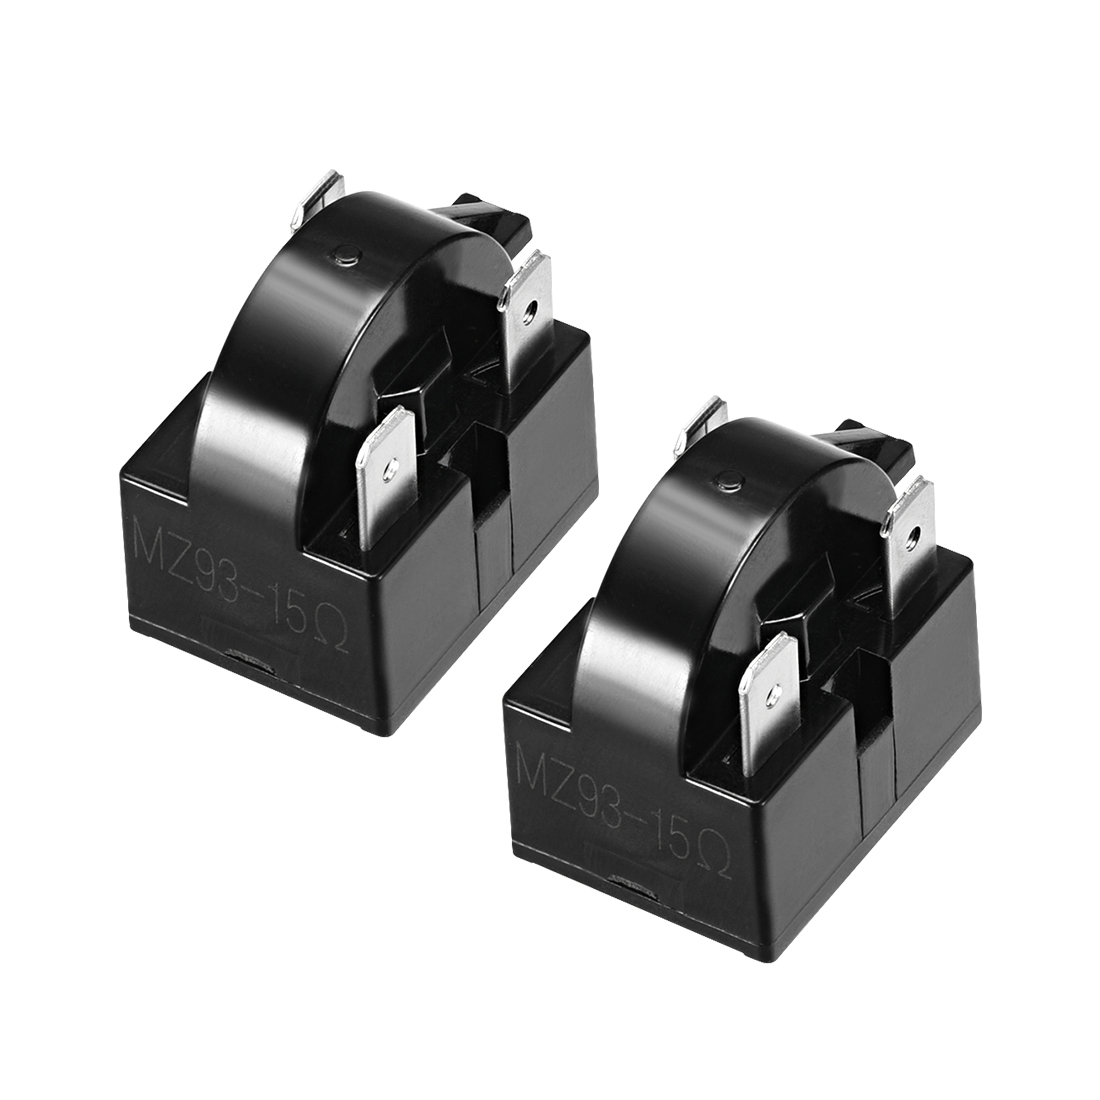 uxcell <font><b>2</b></font> Pcs <font><b>4</b></font>.7-33 Ohm <font><b>4</b></font> <font><b>Pin</b></font> Refrigerator PTC Starter Relay Black 15 Ohm 3 <font><b>Pin</b></font> <font><b>2</b></font> Pcs image